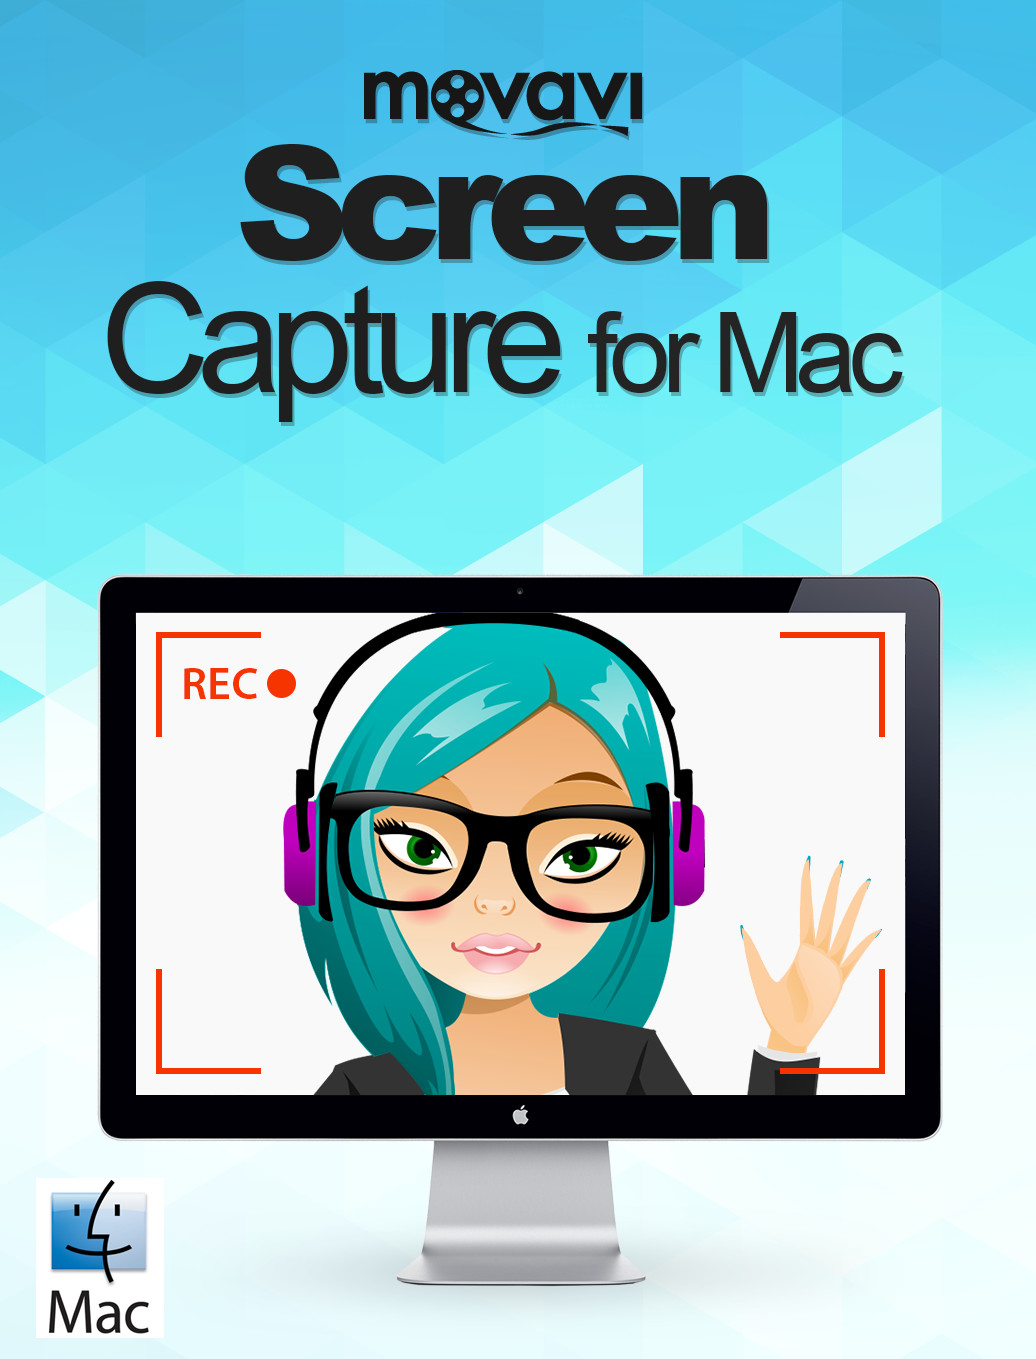 Movavi Screen Capture for Mac 4 Personal Edition [Download] by Movavi